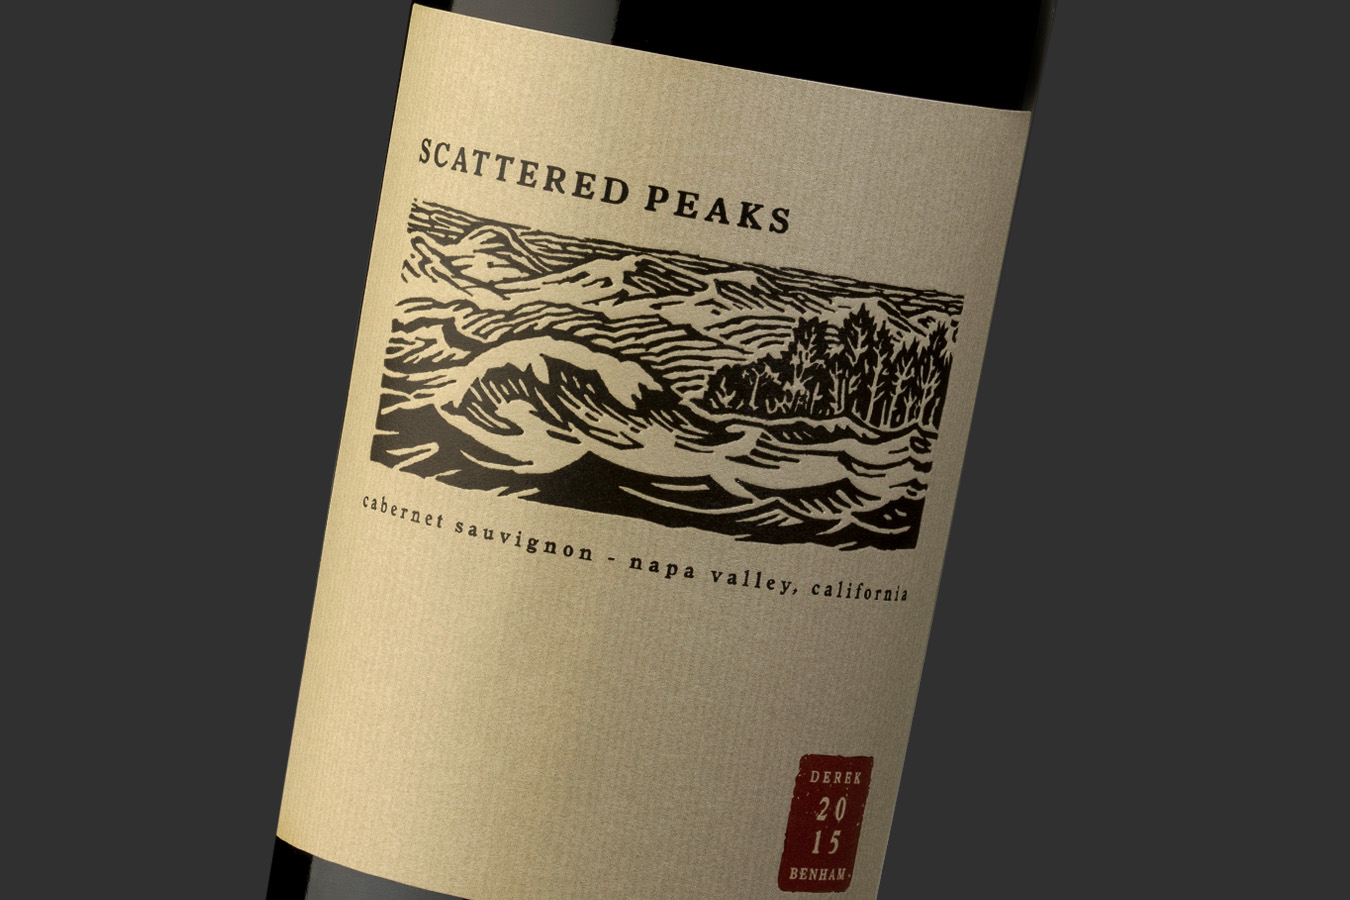 Scattered Peaks_Bottle Shot.jpg